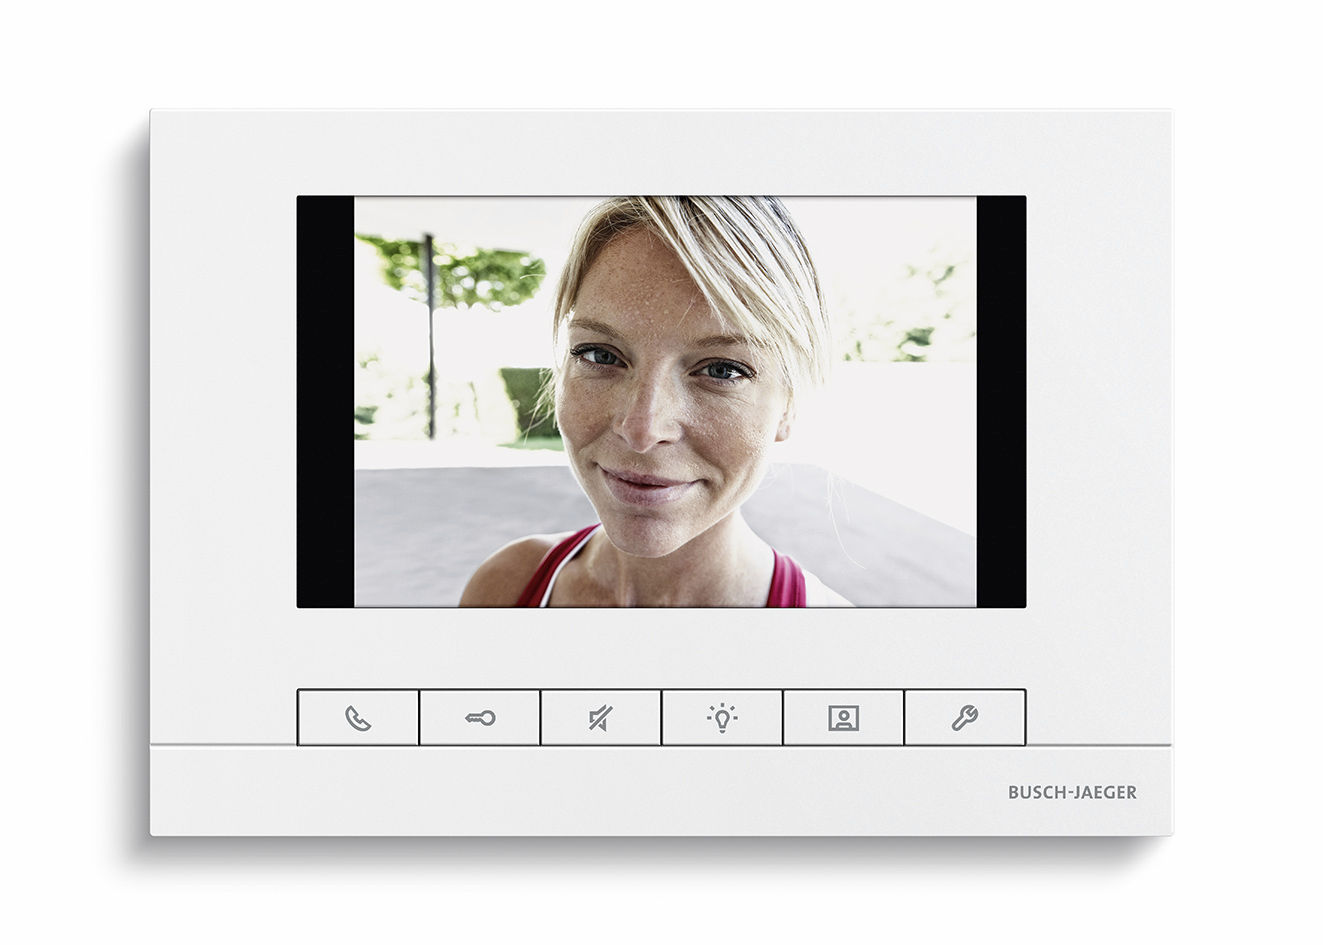 video-door-intercom-color-screen-hands-free-indoor-53234-4541103.jpg